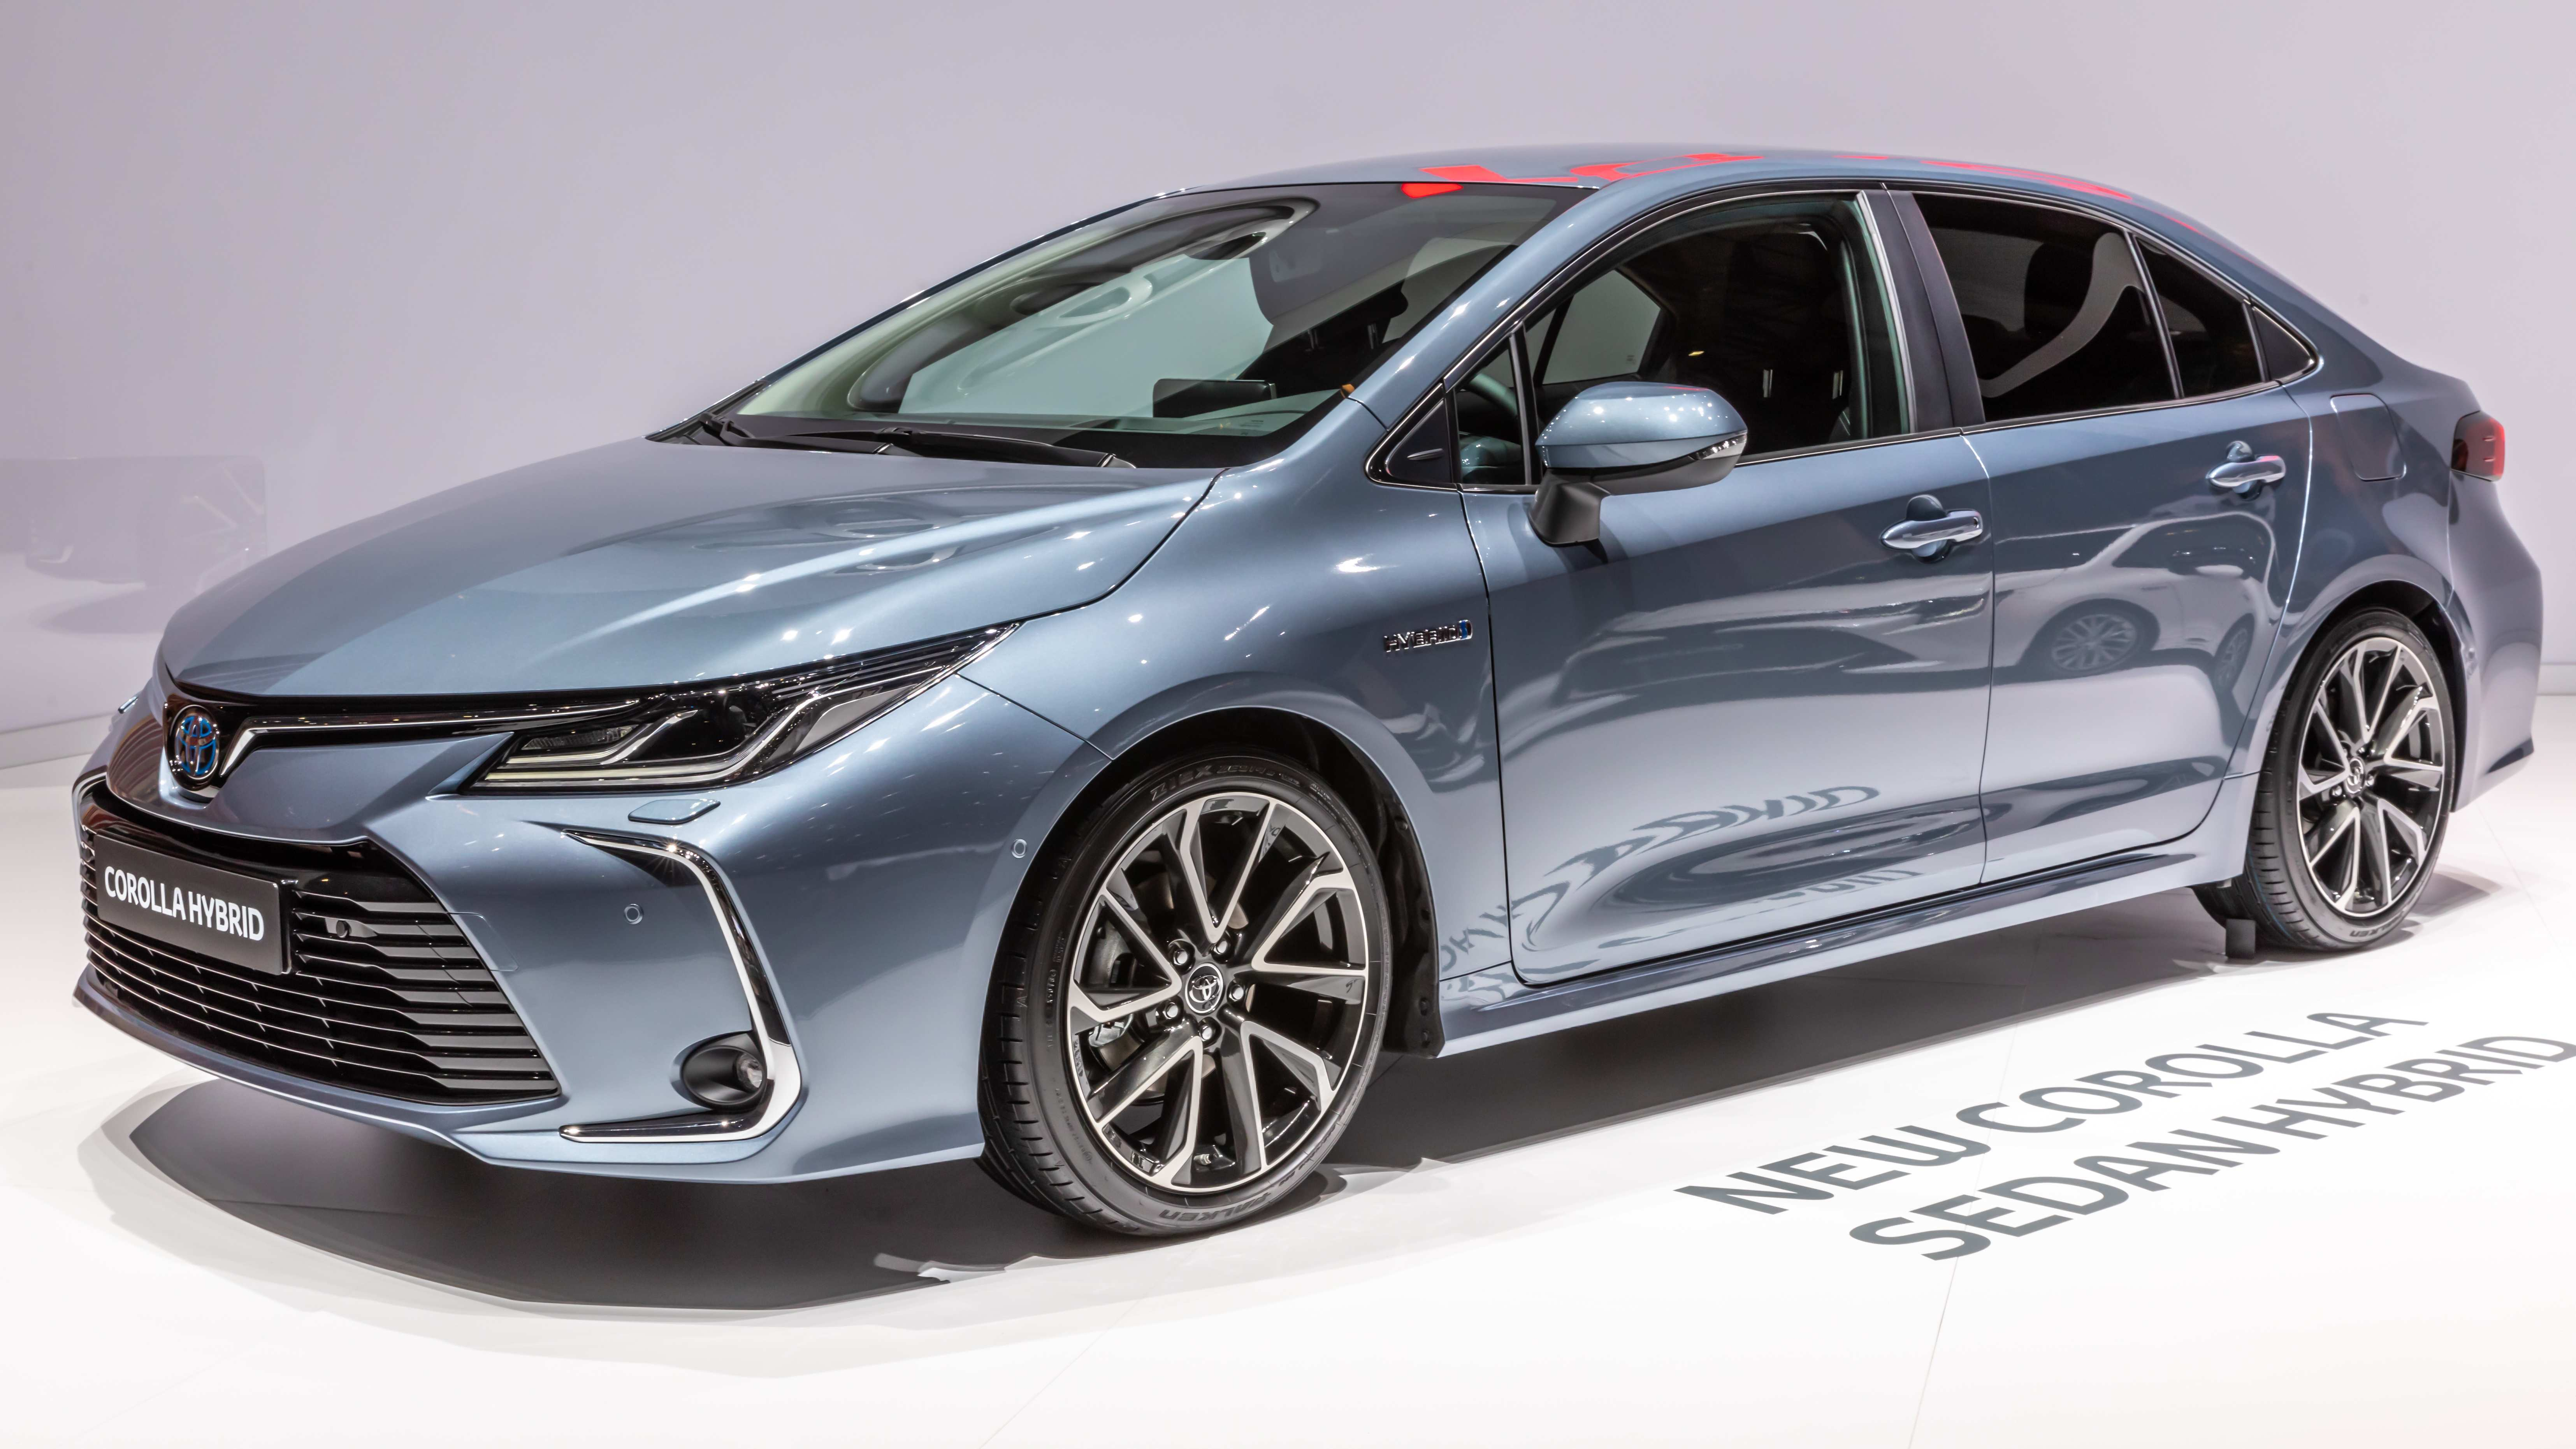 51 All New 2019 Toyota Altis Release Date And Concept